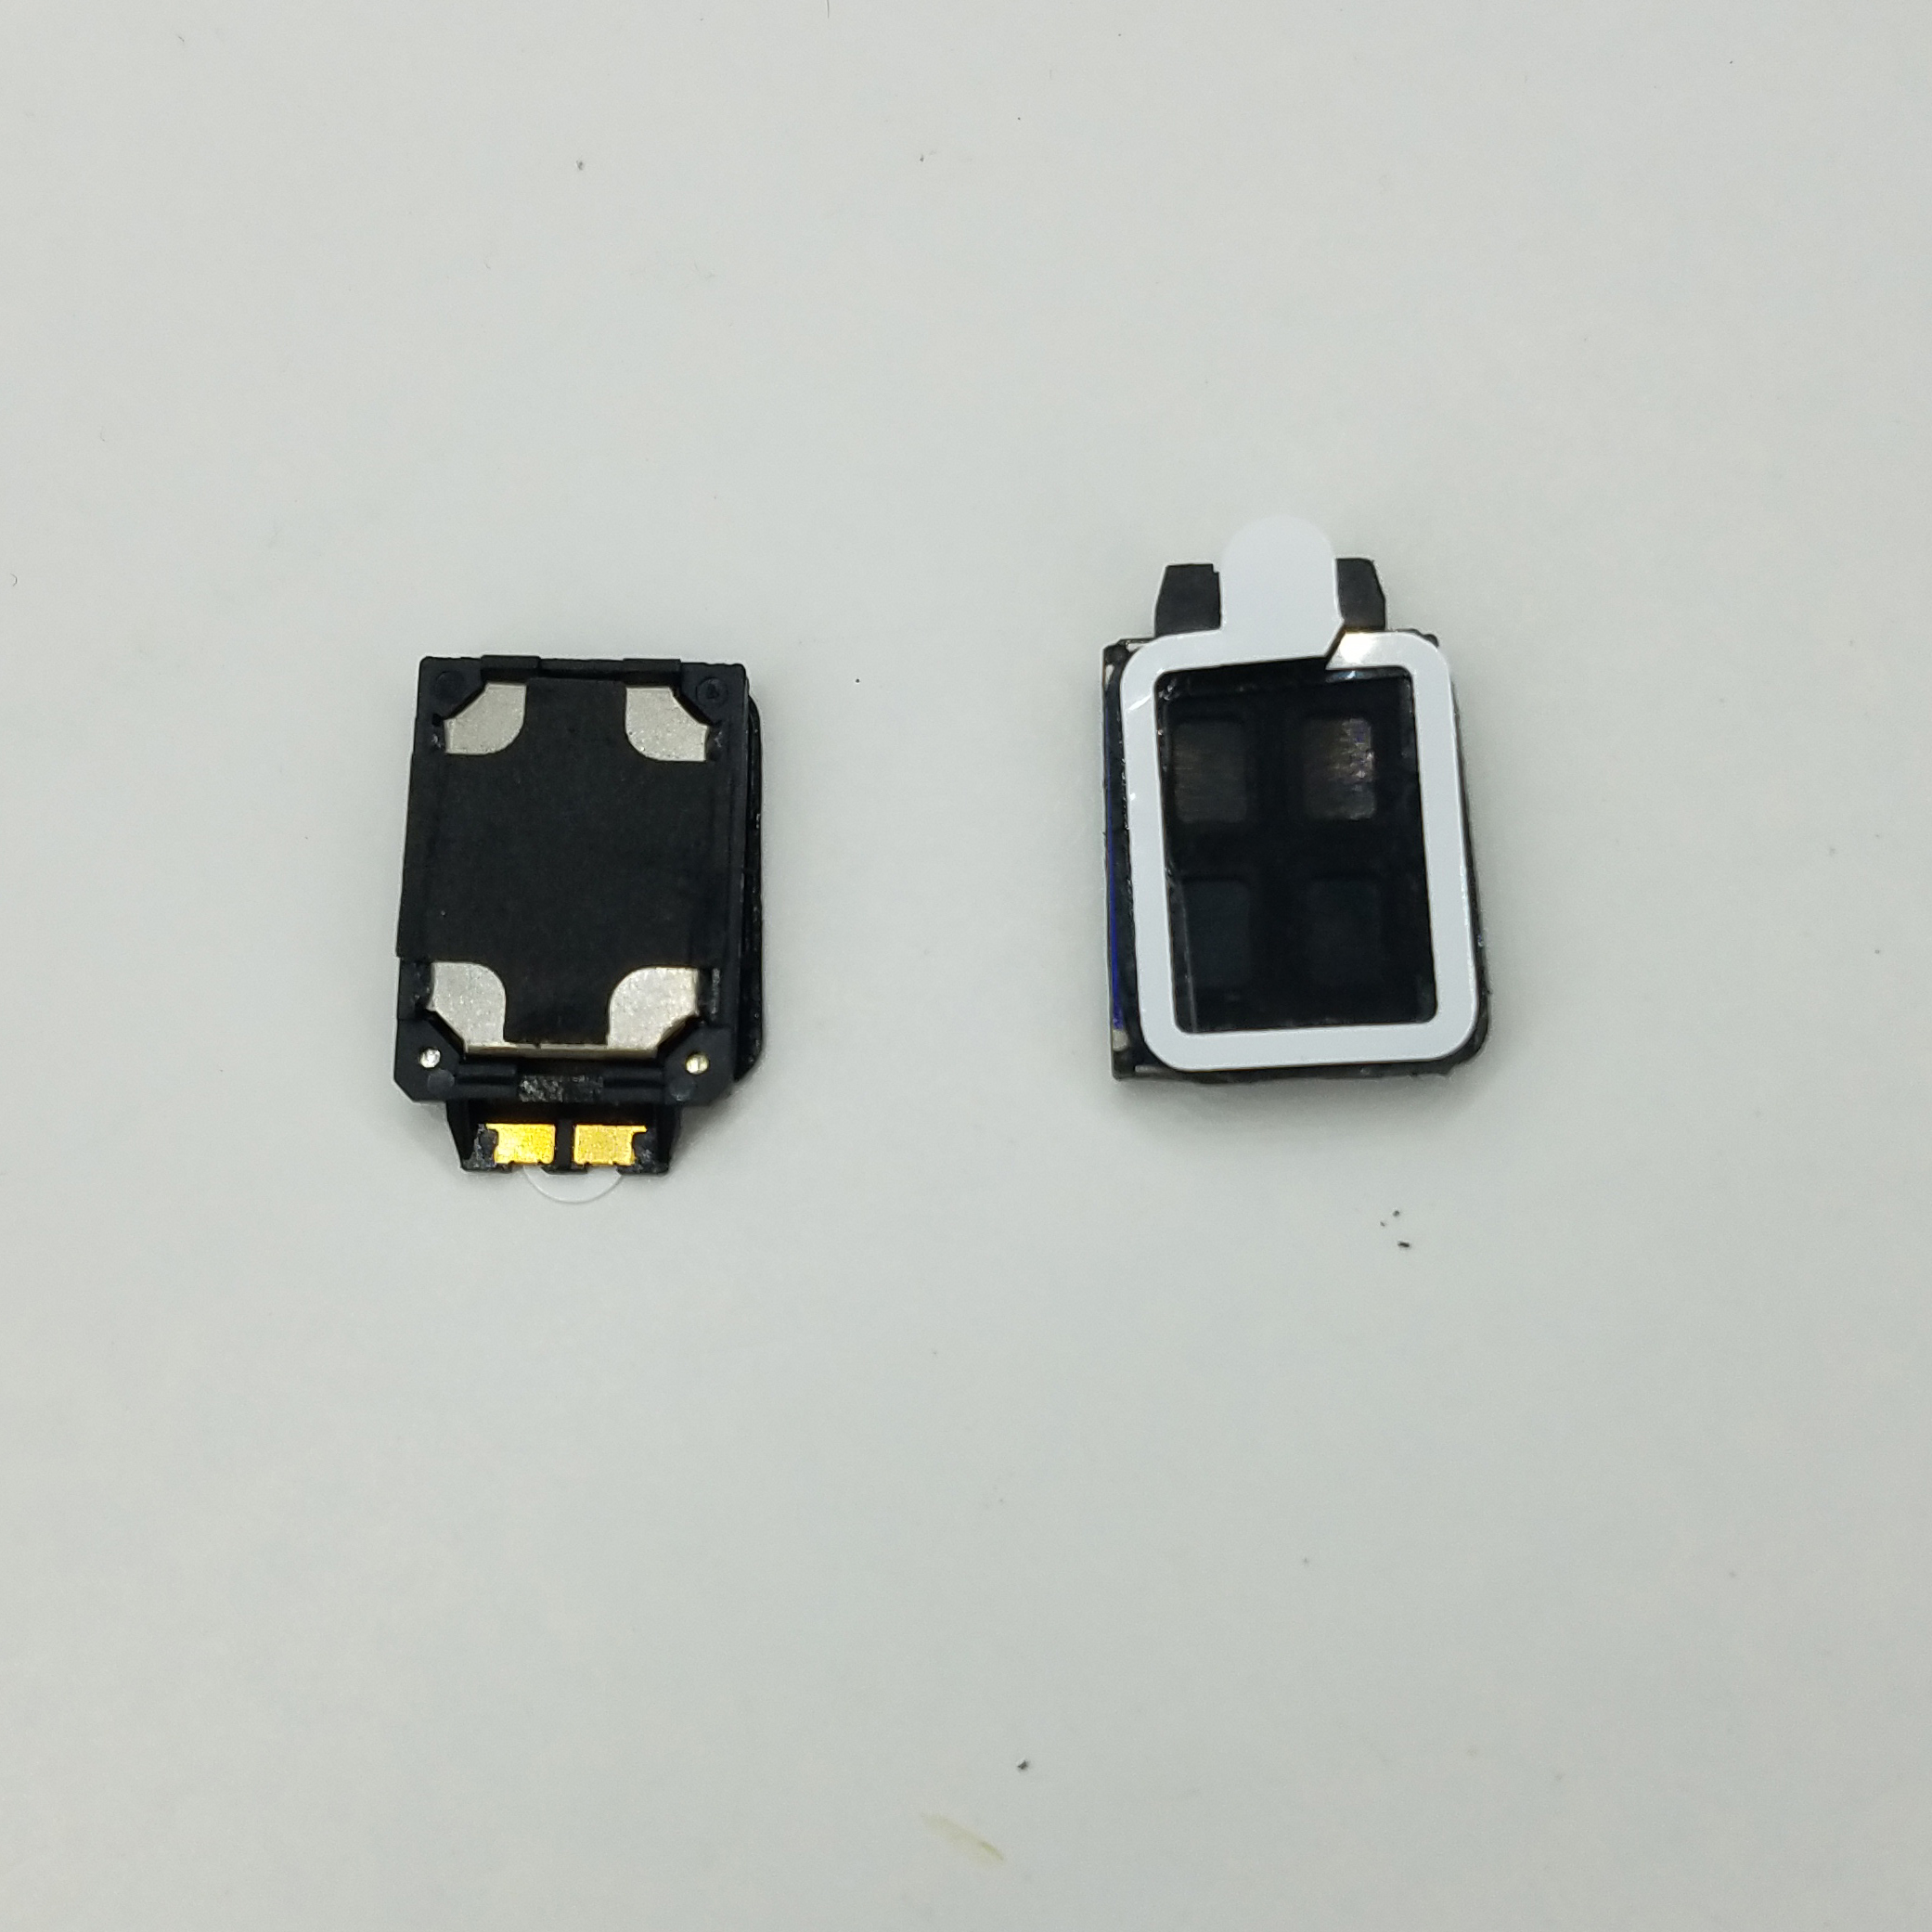 For Samsung Galaxy Tab A 7.0 T280 T285 Original Phone Loud Speaker Buzzer Ringer Flex Cable Replacement Part